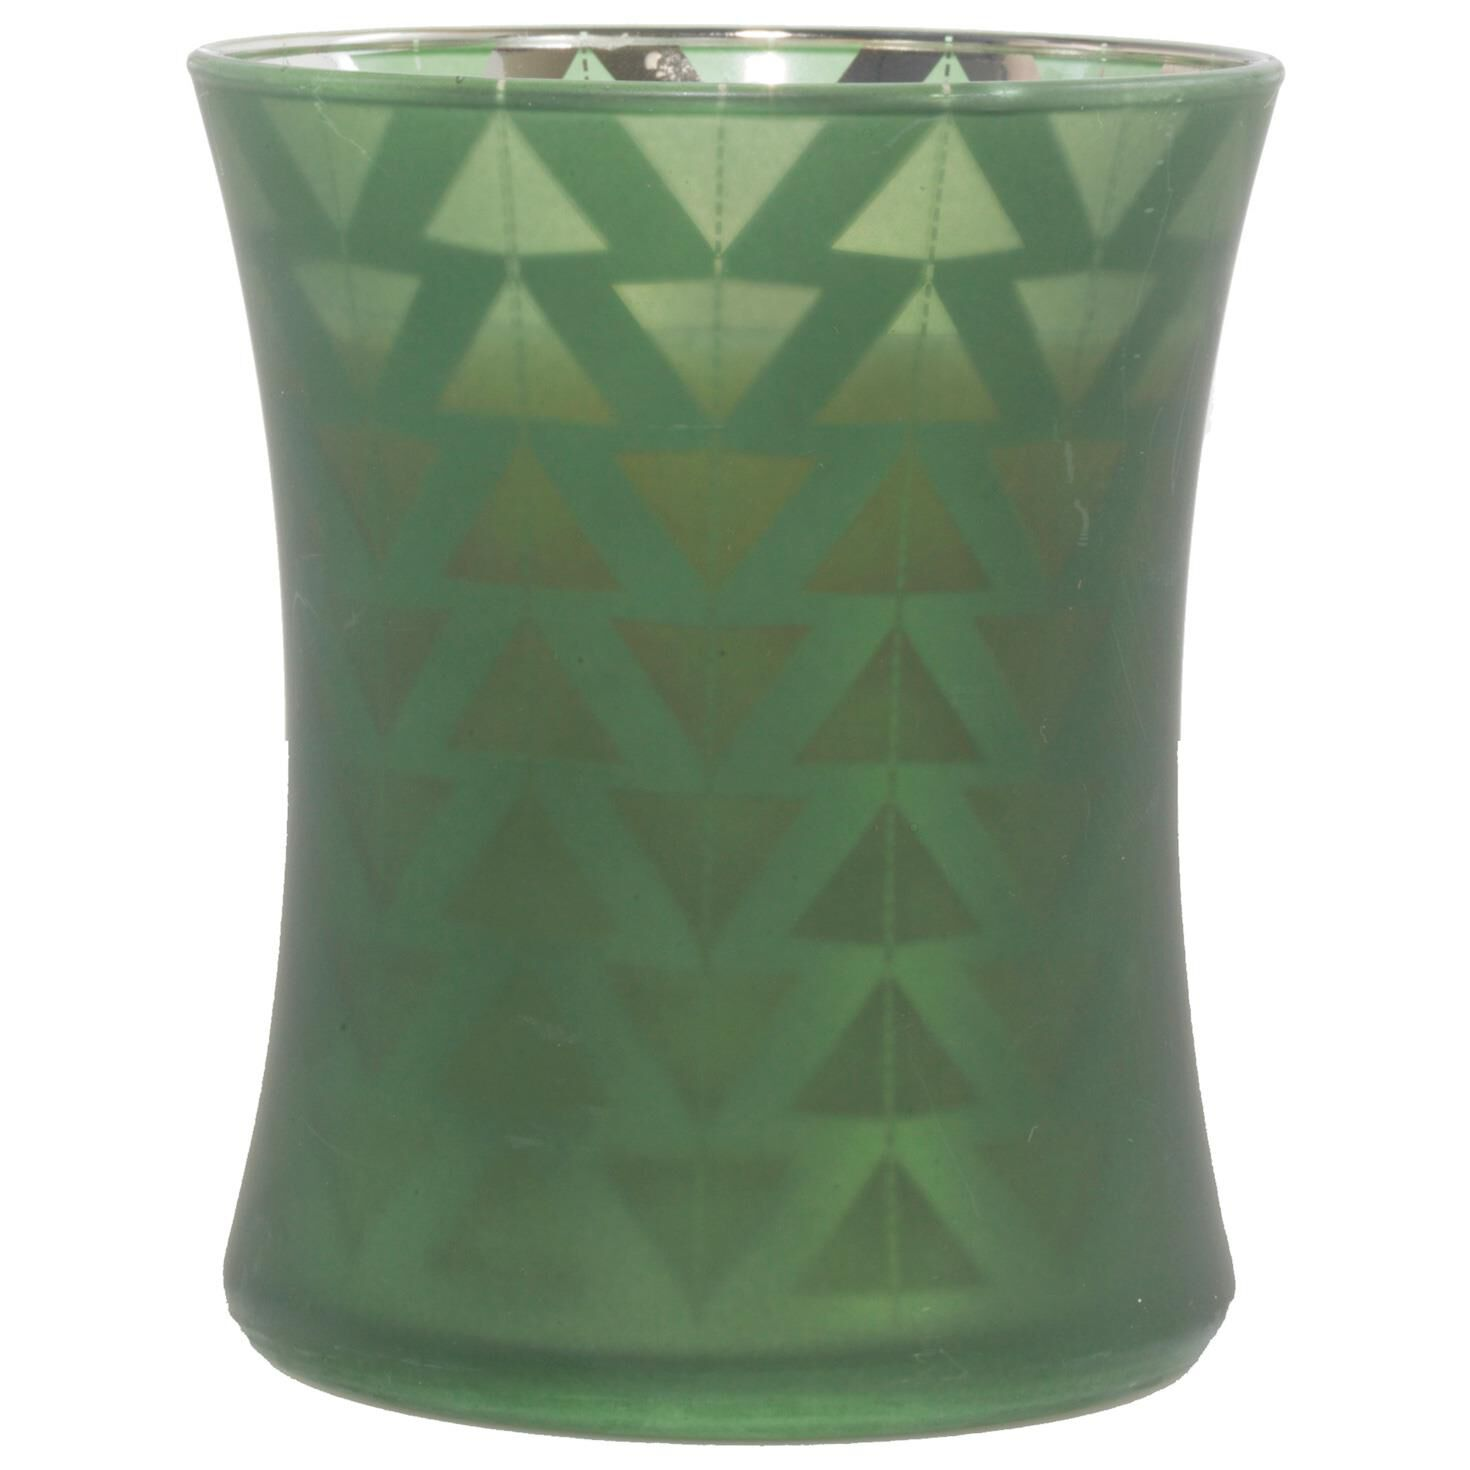 graphic about Crucible Candle Printable named WoodWick® Candles, Diffusers Auto Vents Hallmark